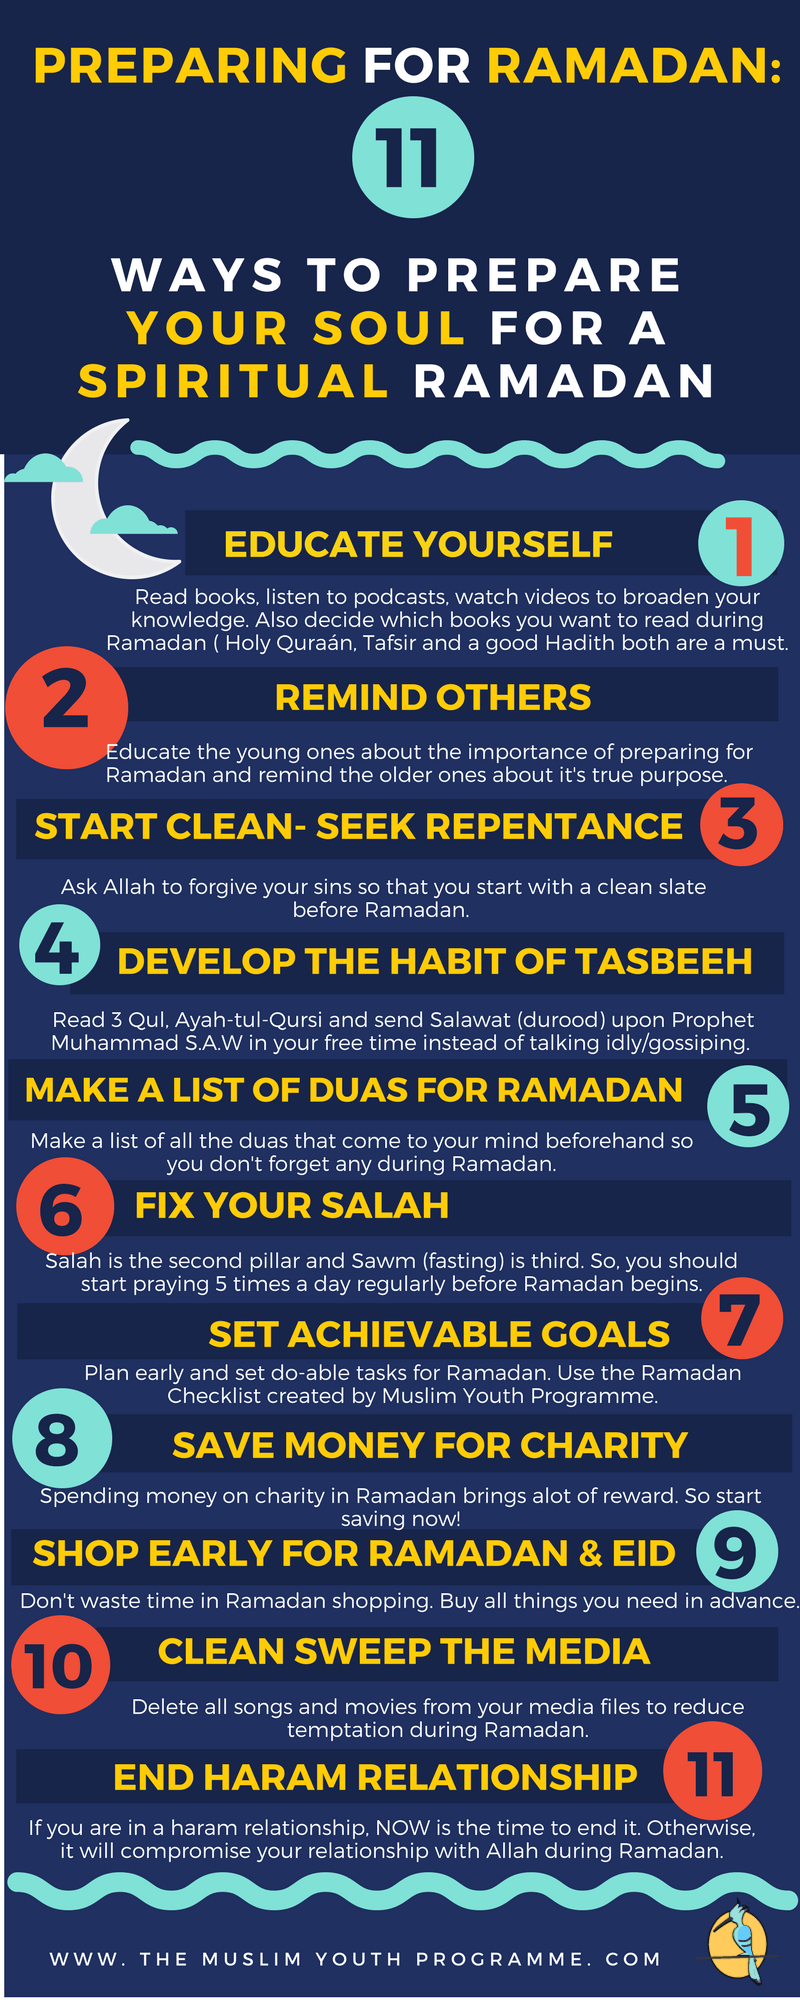 Preparing for Ramadan: The Concept of Two and Top 11 Ways to Prepare The Soul for A Spiritual Ramadan